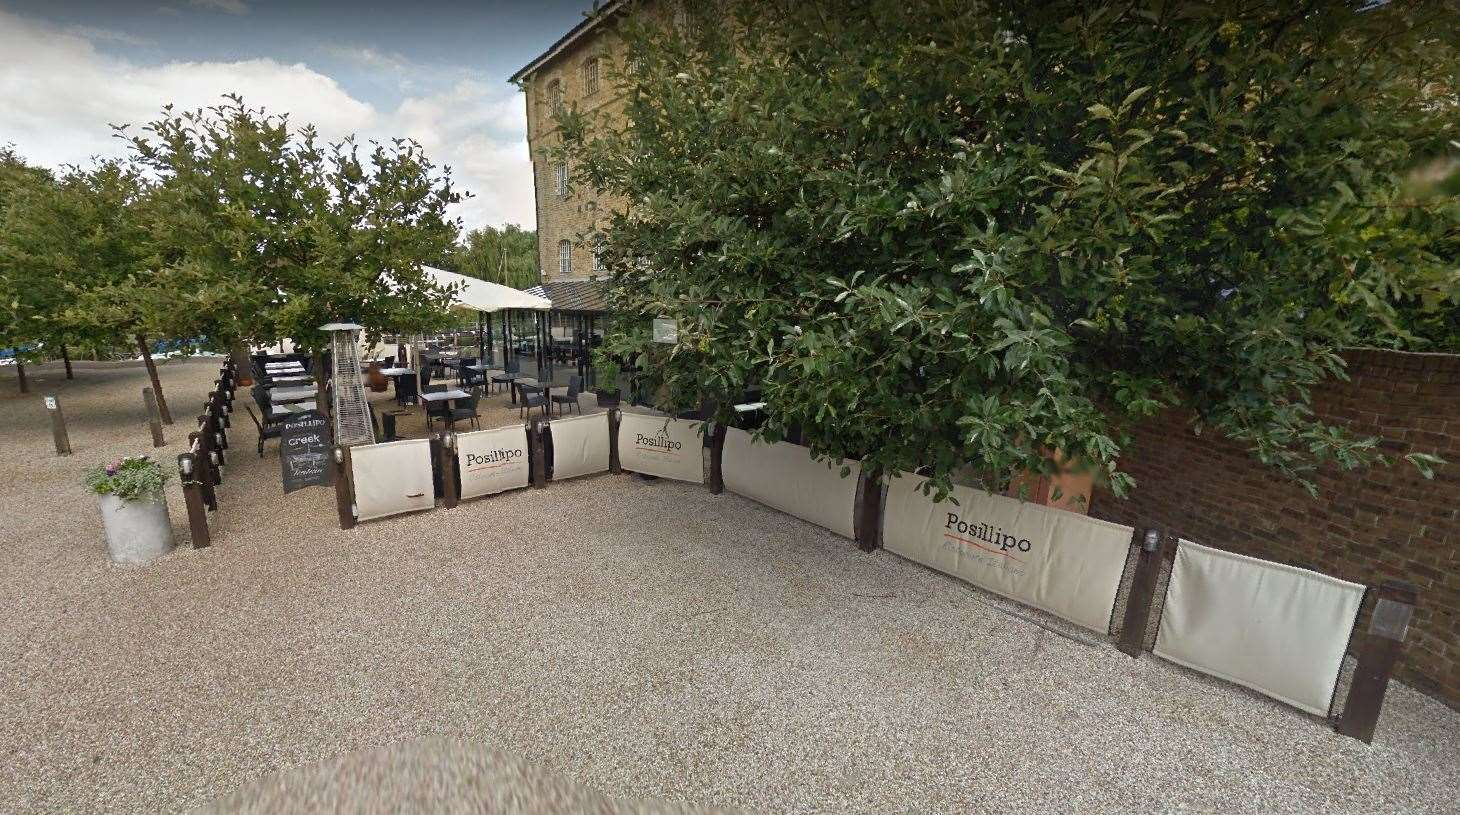 Posillipo in Faversham has been closed until further notice after a staff member contracted Covid.  Image: Google